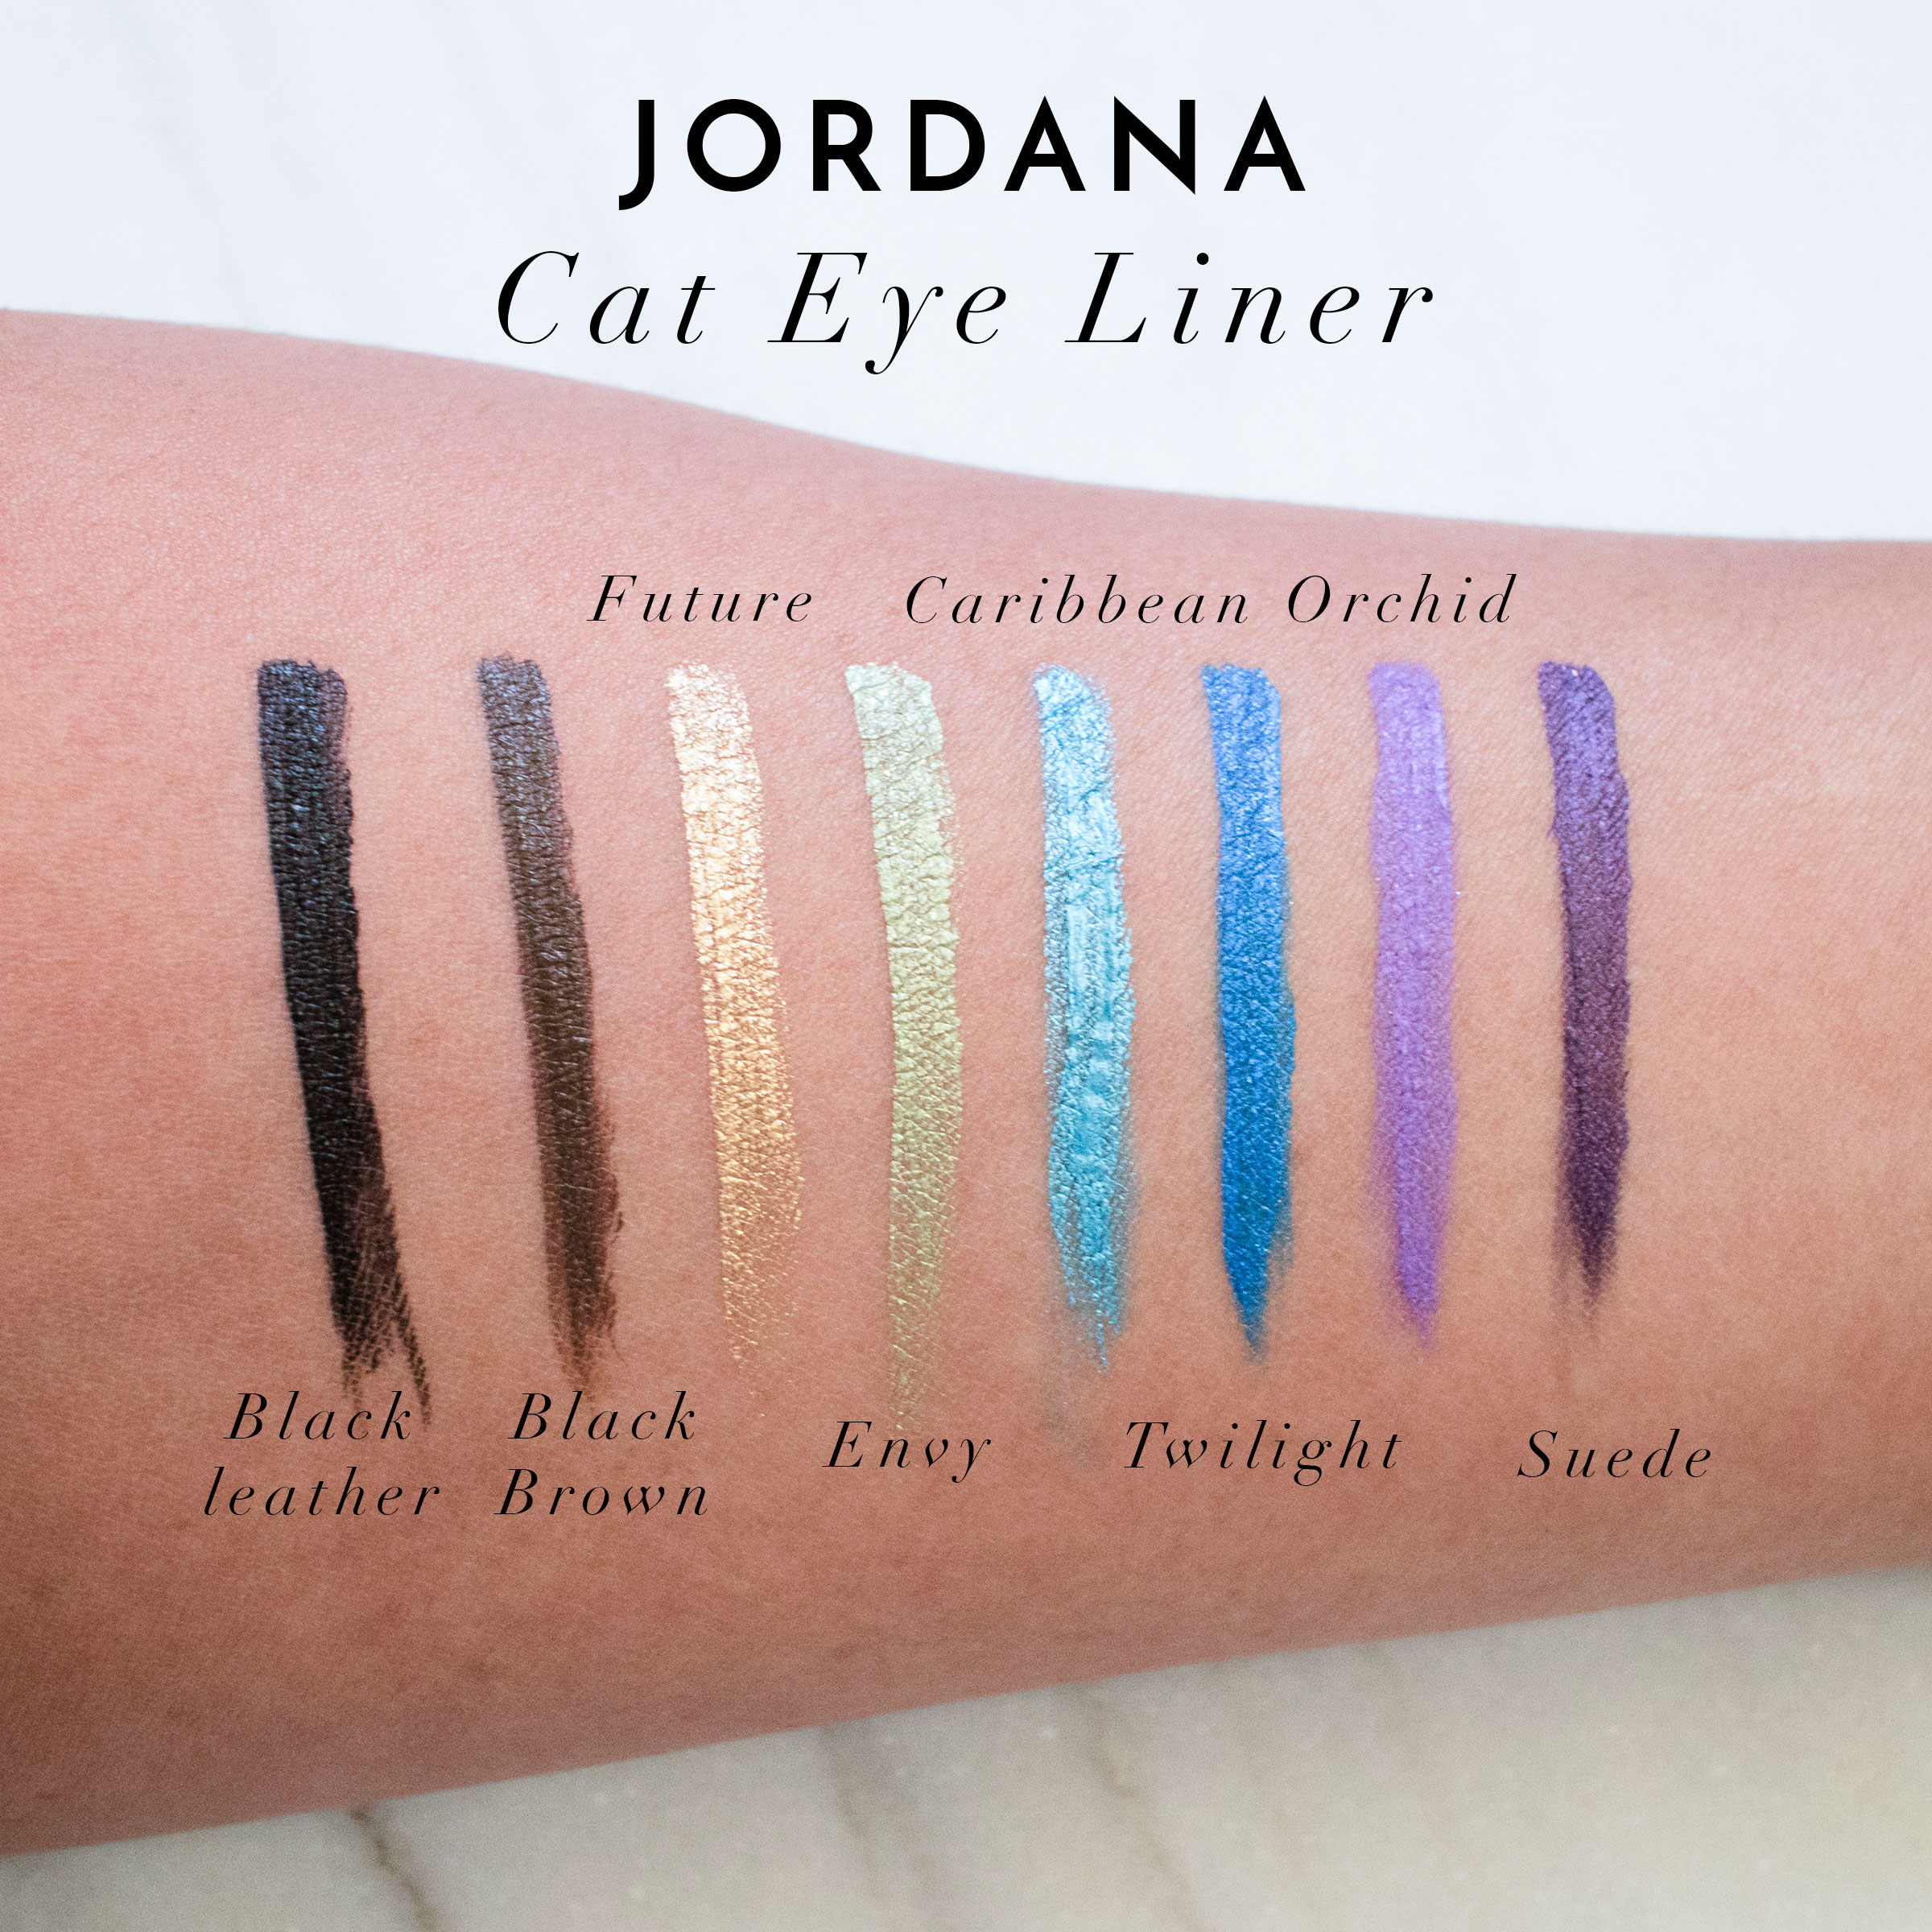 Jordana Cat Eye Liner Swatches Review